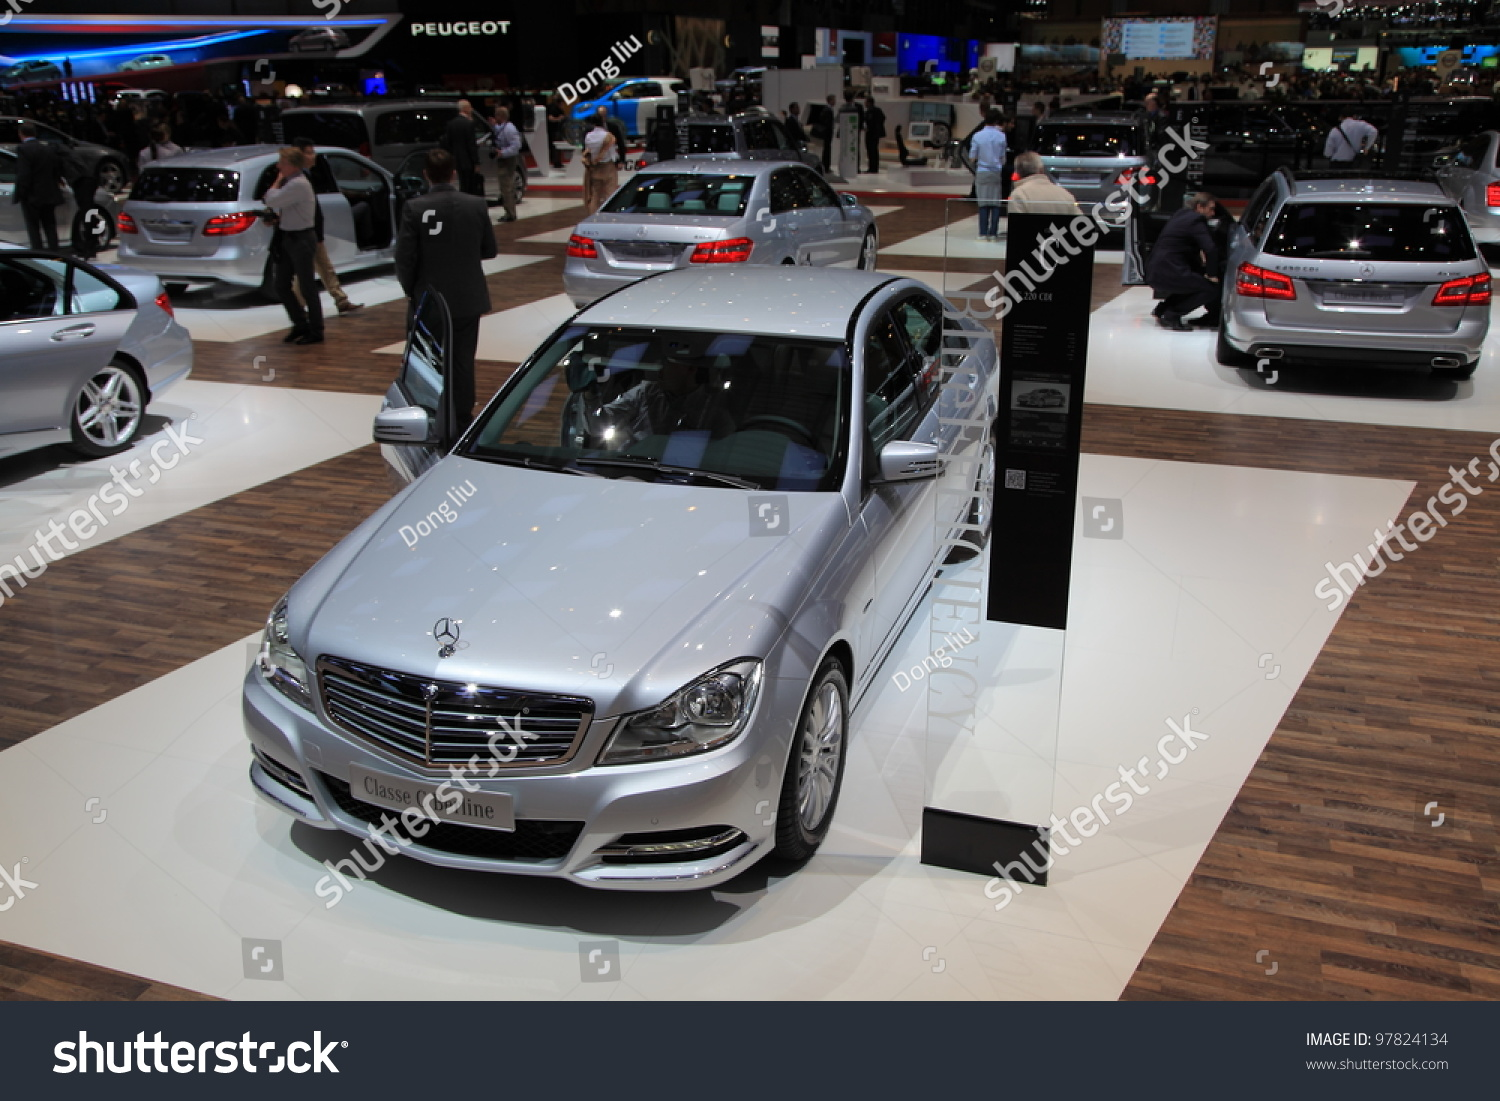 geneva march 8 a mercedes benz classe e berline car on display at 82th international motor. Black Bedroom Furniture Sets. Home Design Ideas